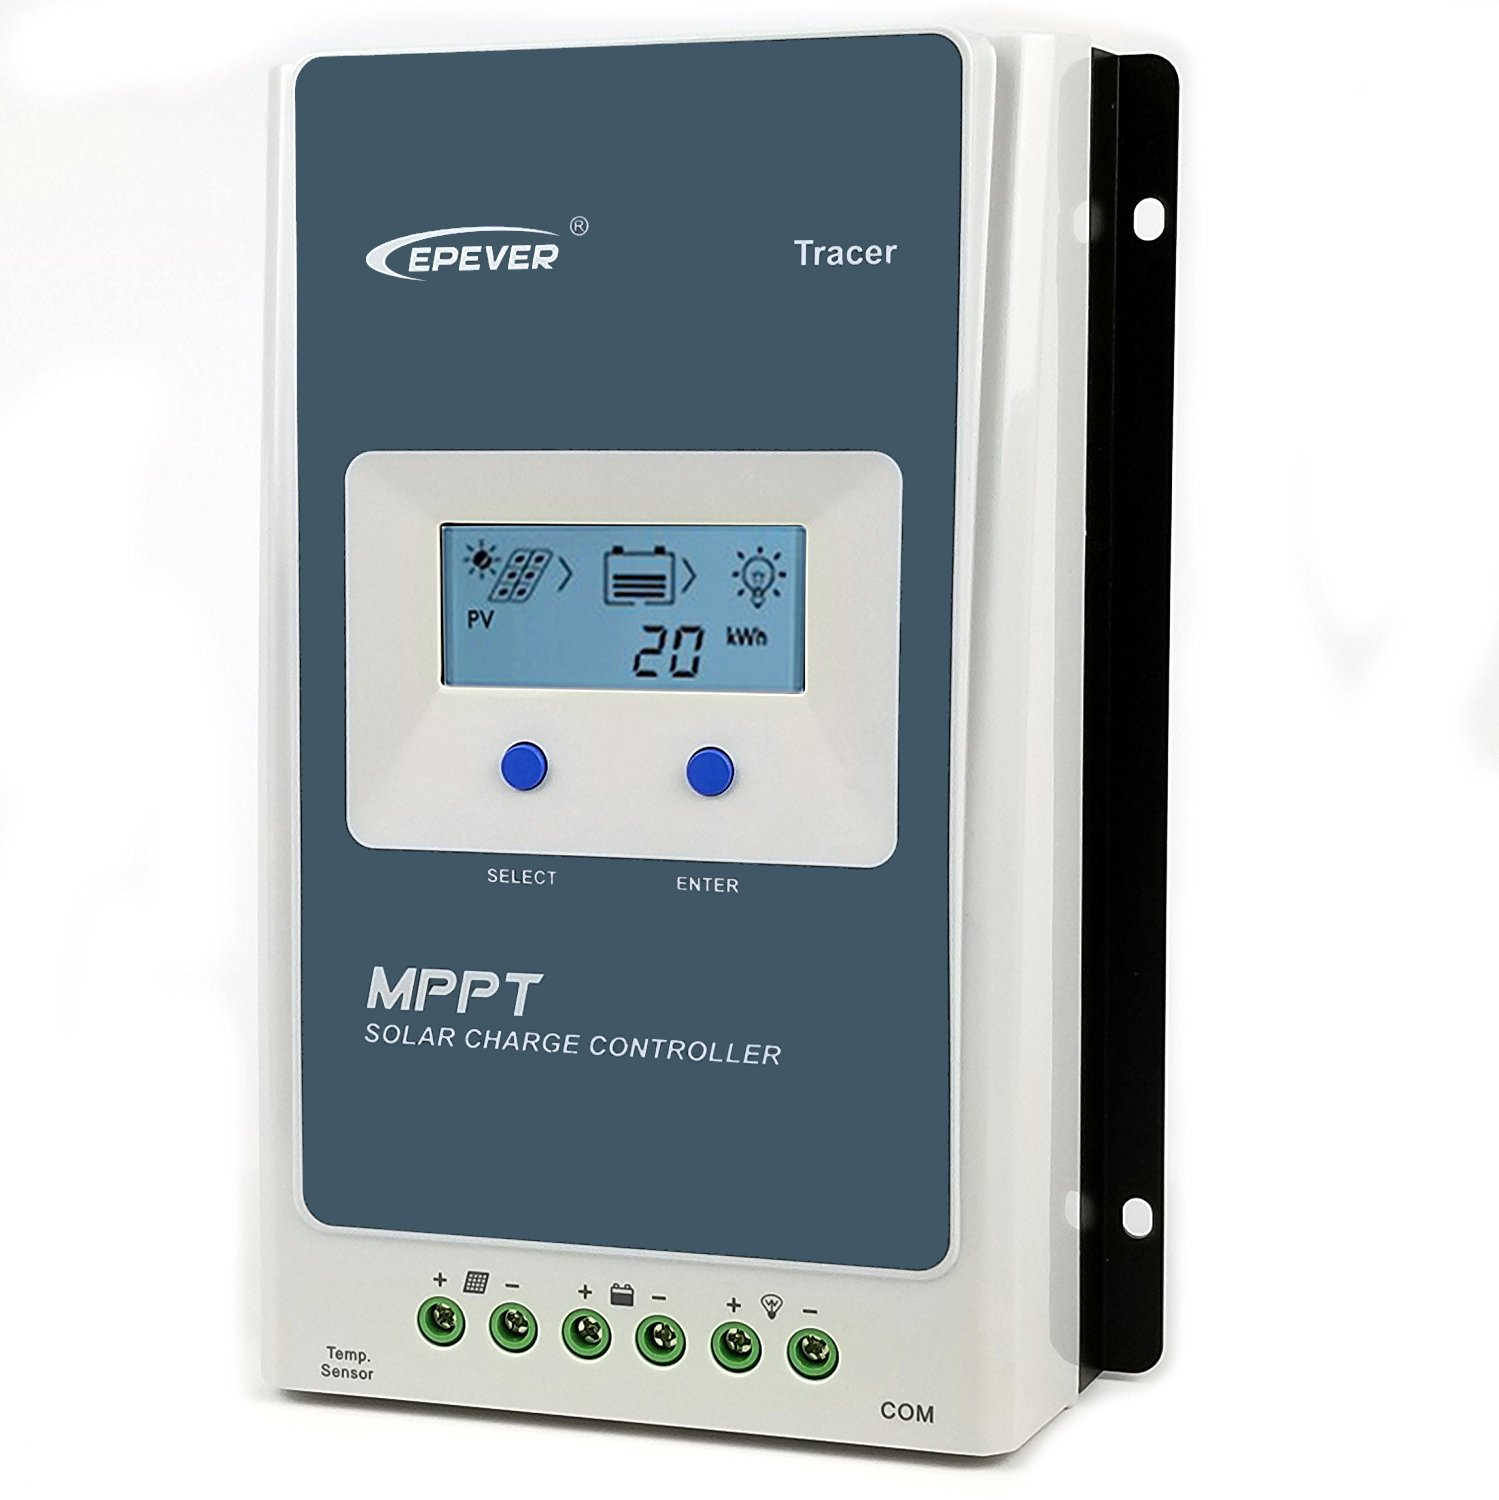 Epever Mppt Charge Controller 10a Solar Panel Arduino Pwm Circuit 4 100v Pv Input Negative Grounded Regulator 12v 24v Auto With Lcd